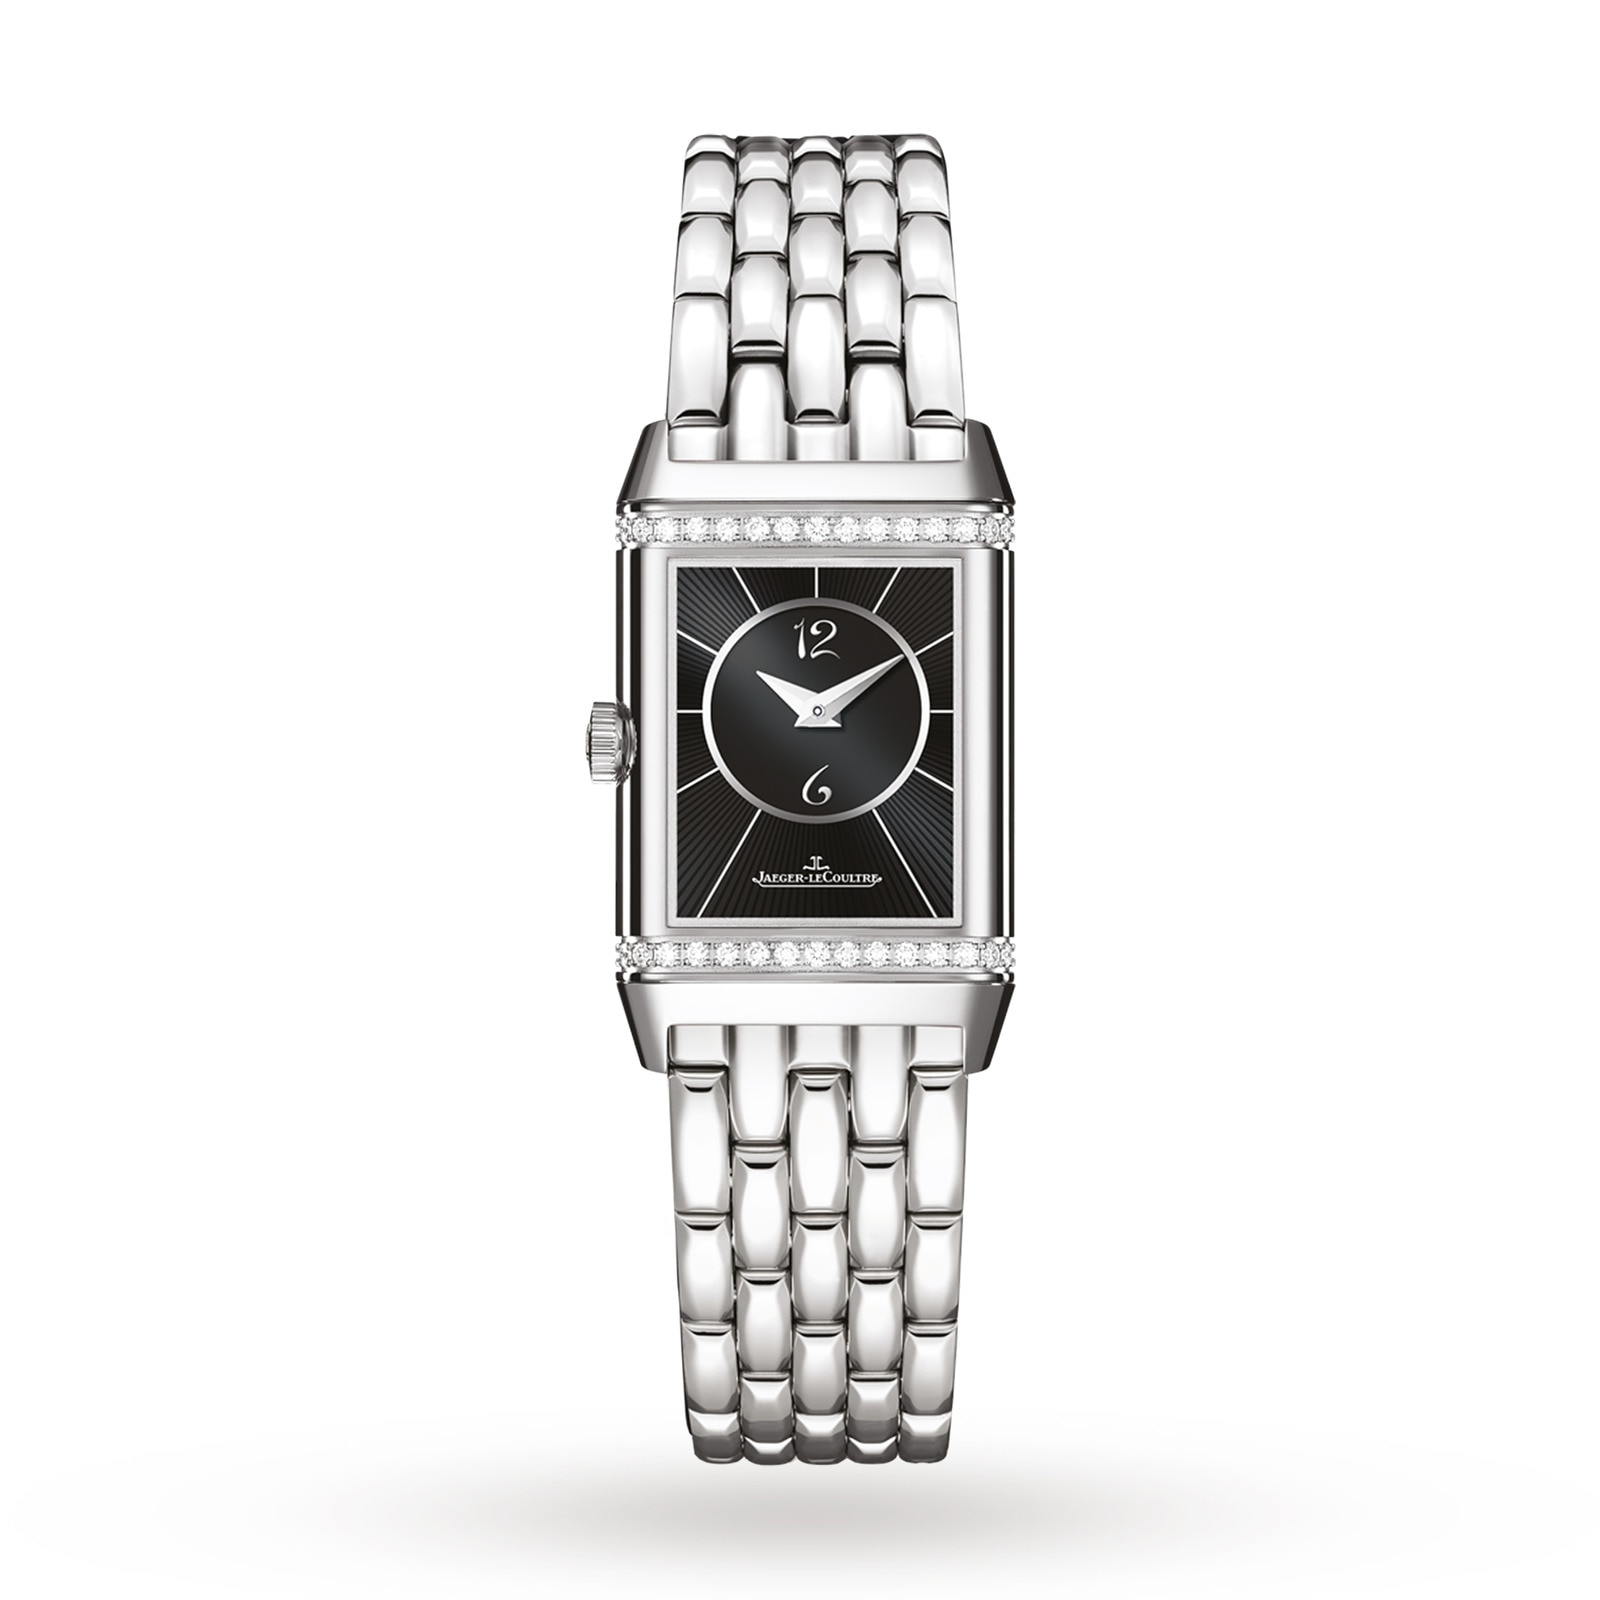 Jaeger-LeCoultre Reverso Classic Ladies Watch